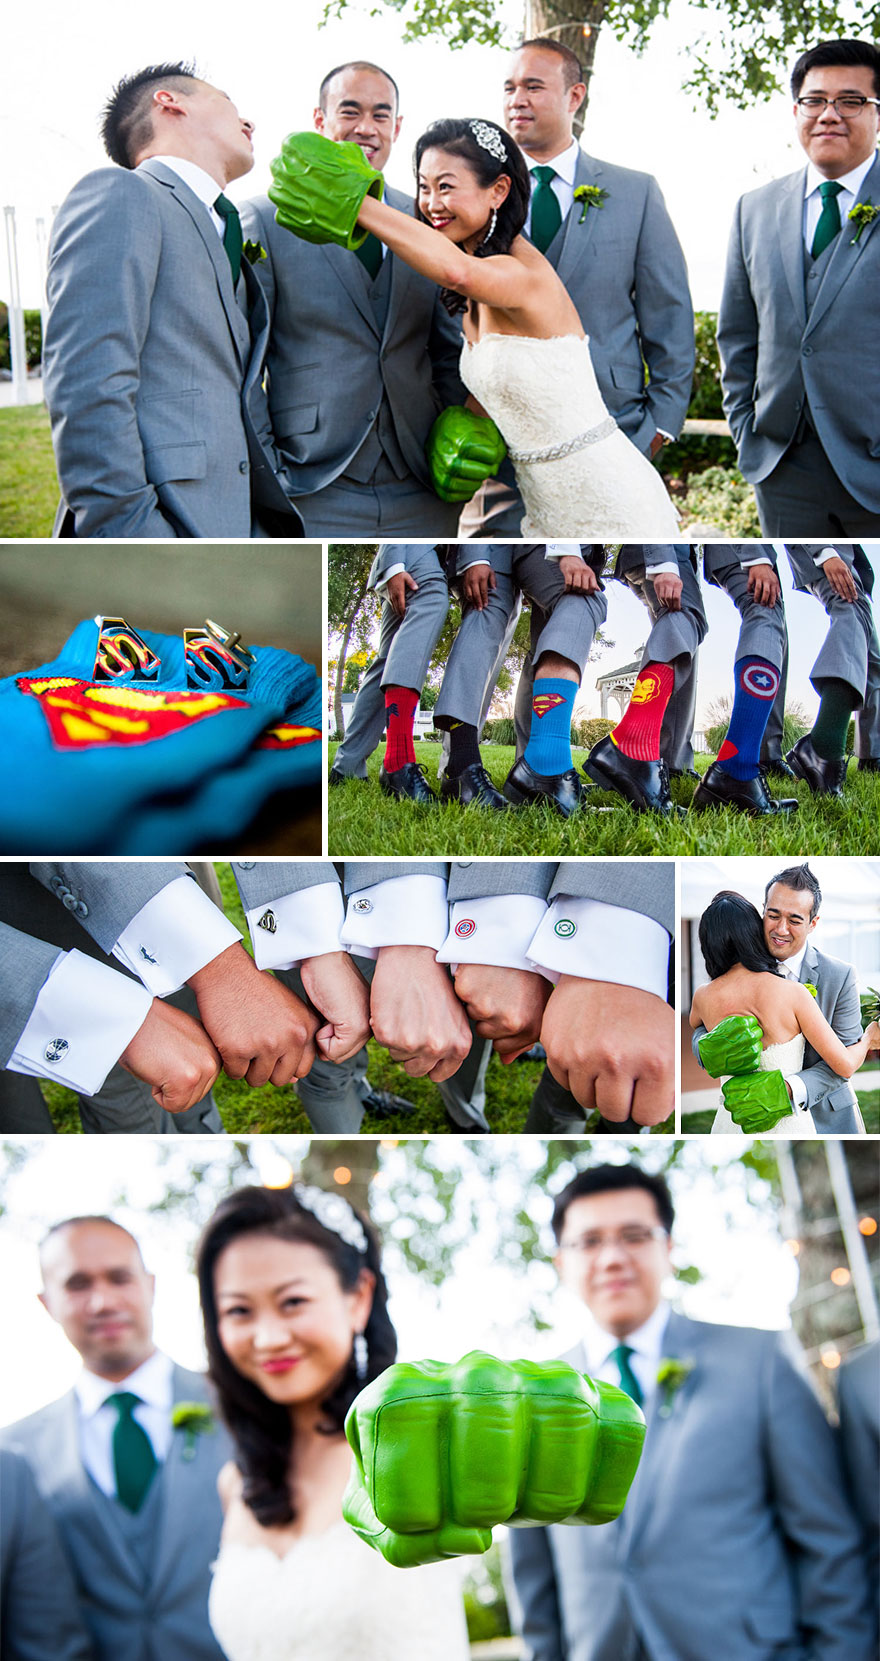 geeky-themed-wedding-22-5745645bbb2c0__880